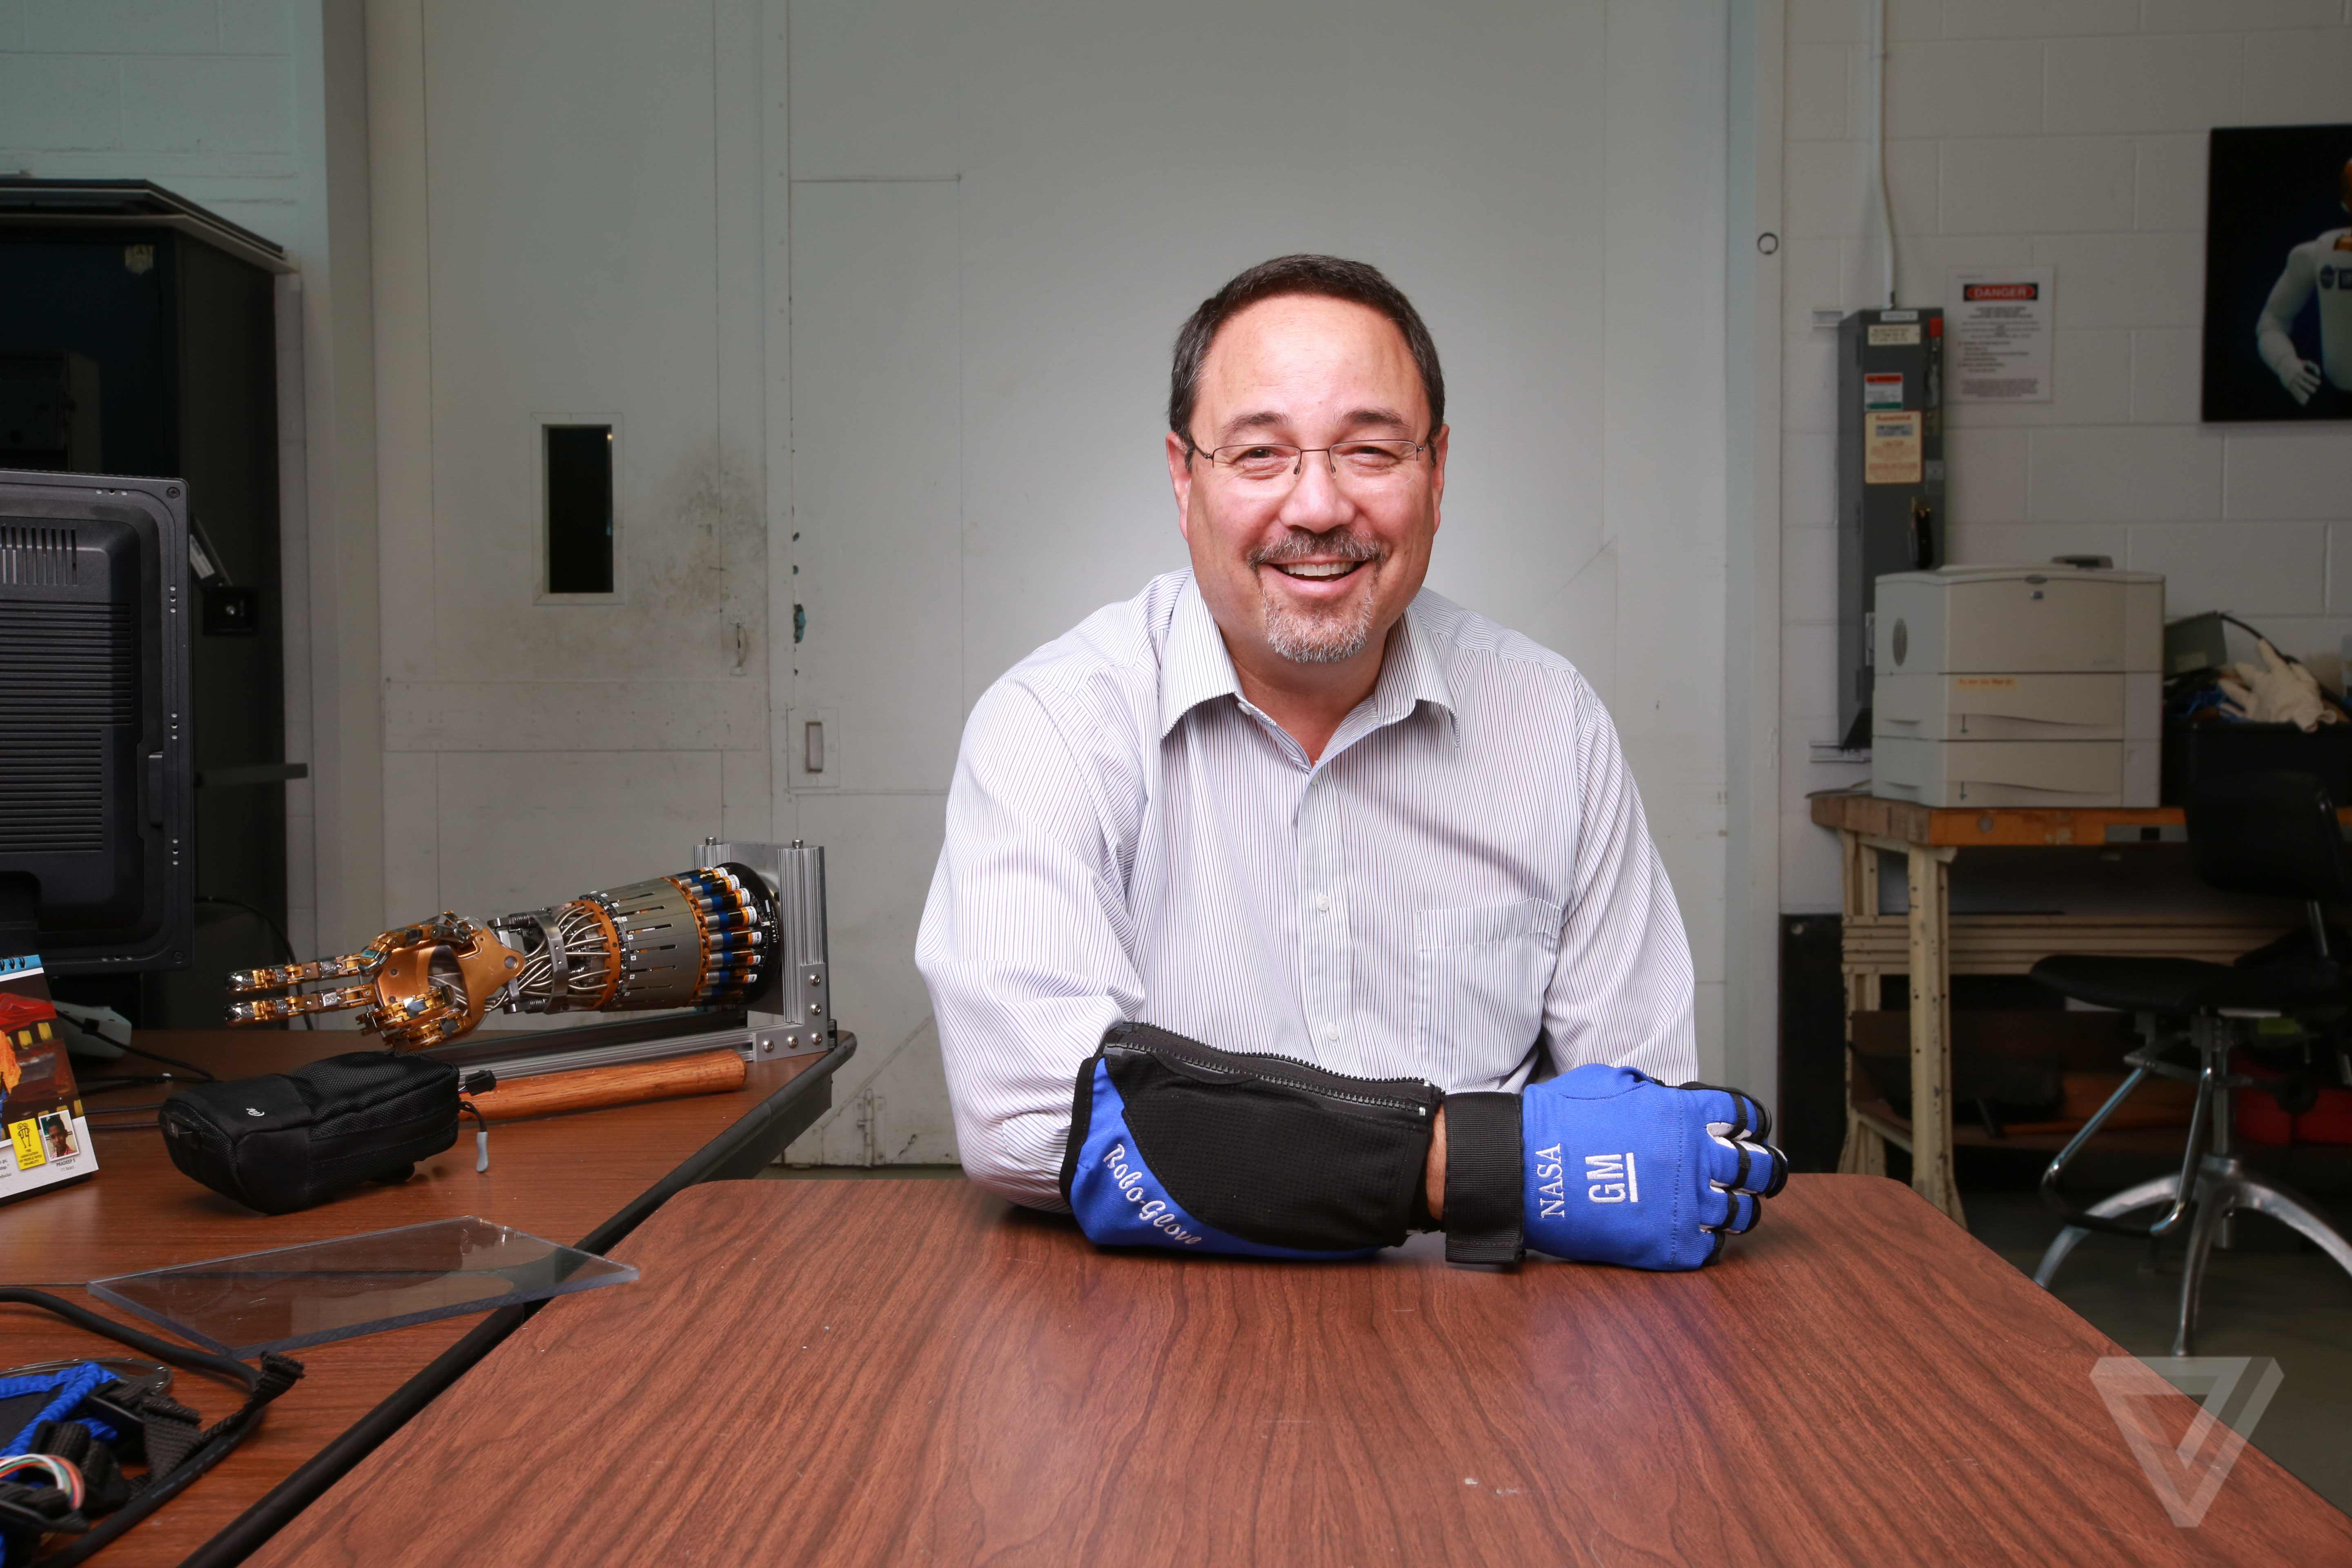 Shaking hands with GM and NASA's RoboGlove - The Verge